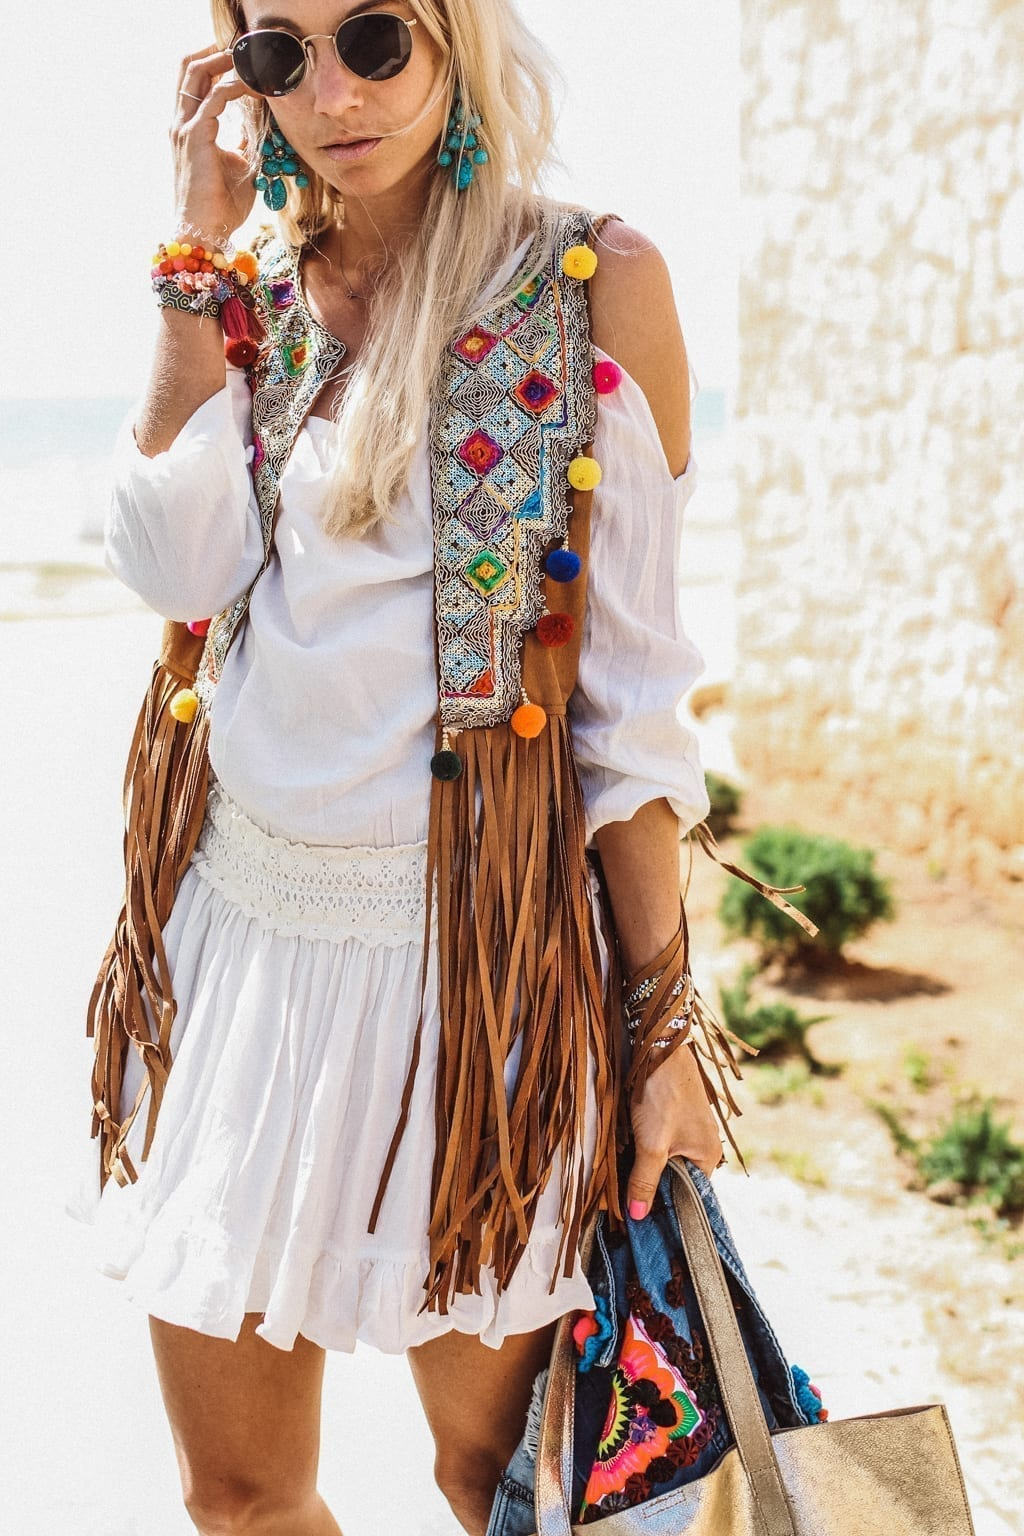 CK1605_Constantly-K-Karin-Kaswurm-Georg-Teigl-Ibiza-Holiday-Spain-Blog-Street-Style-Fashion-Boho-Chic-Beach-Style-2